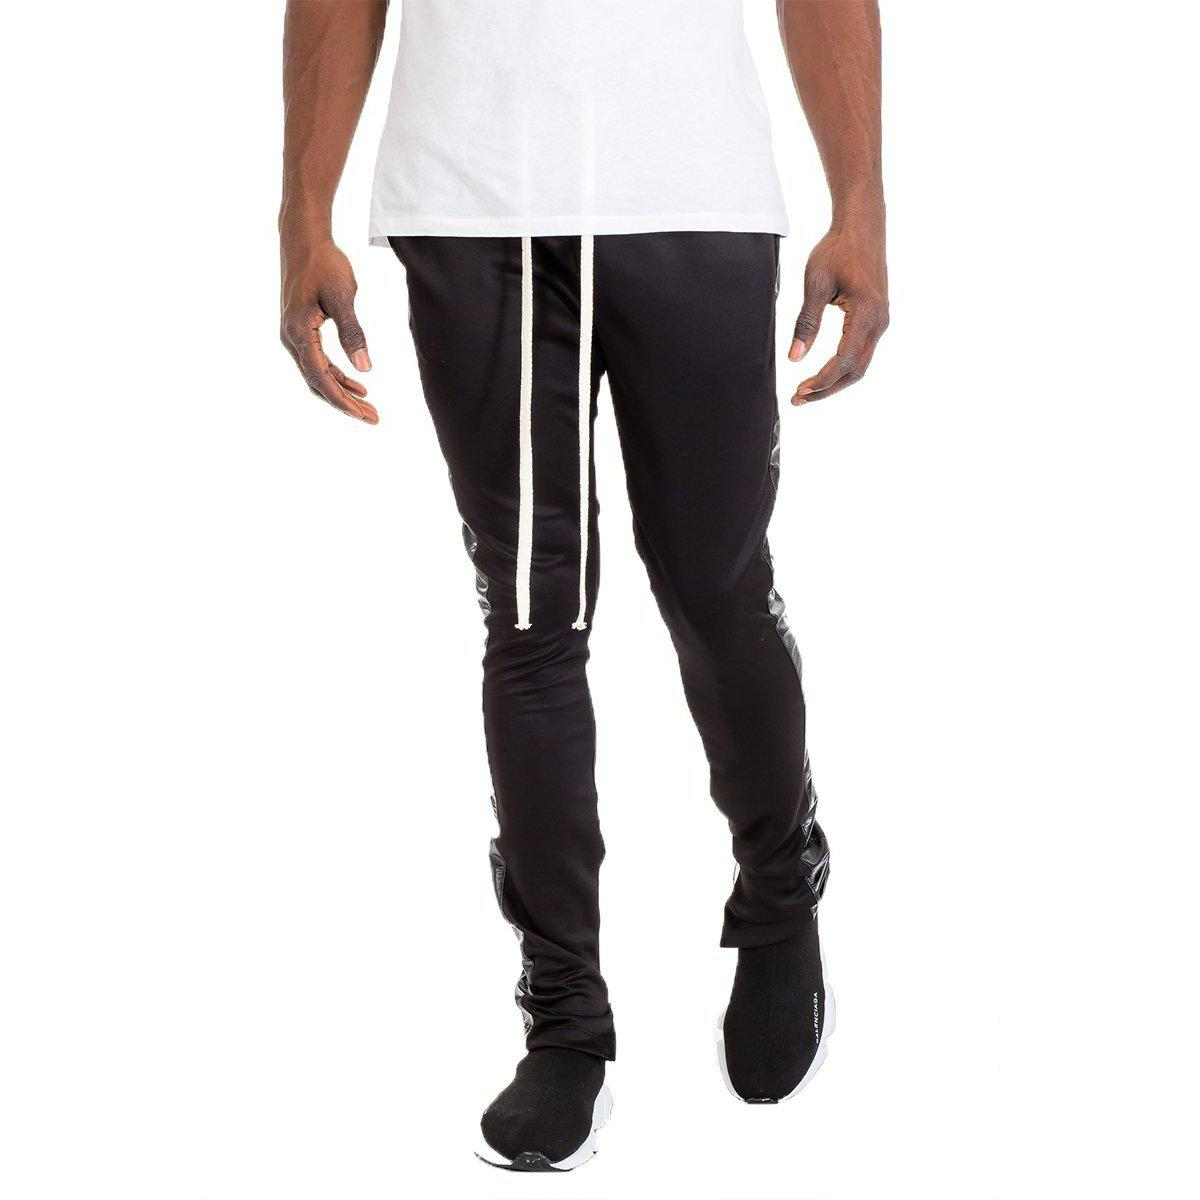 LEATHER TRACK PANTS - BLACK-AcDrift